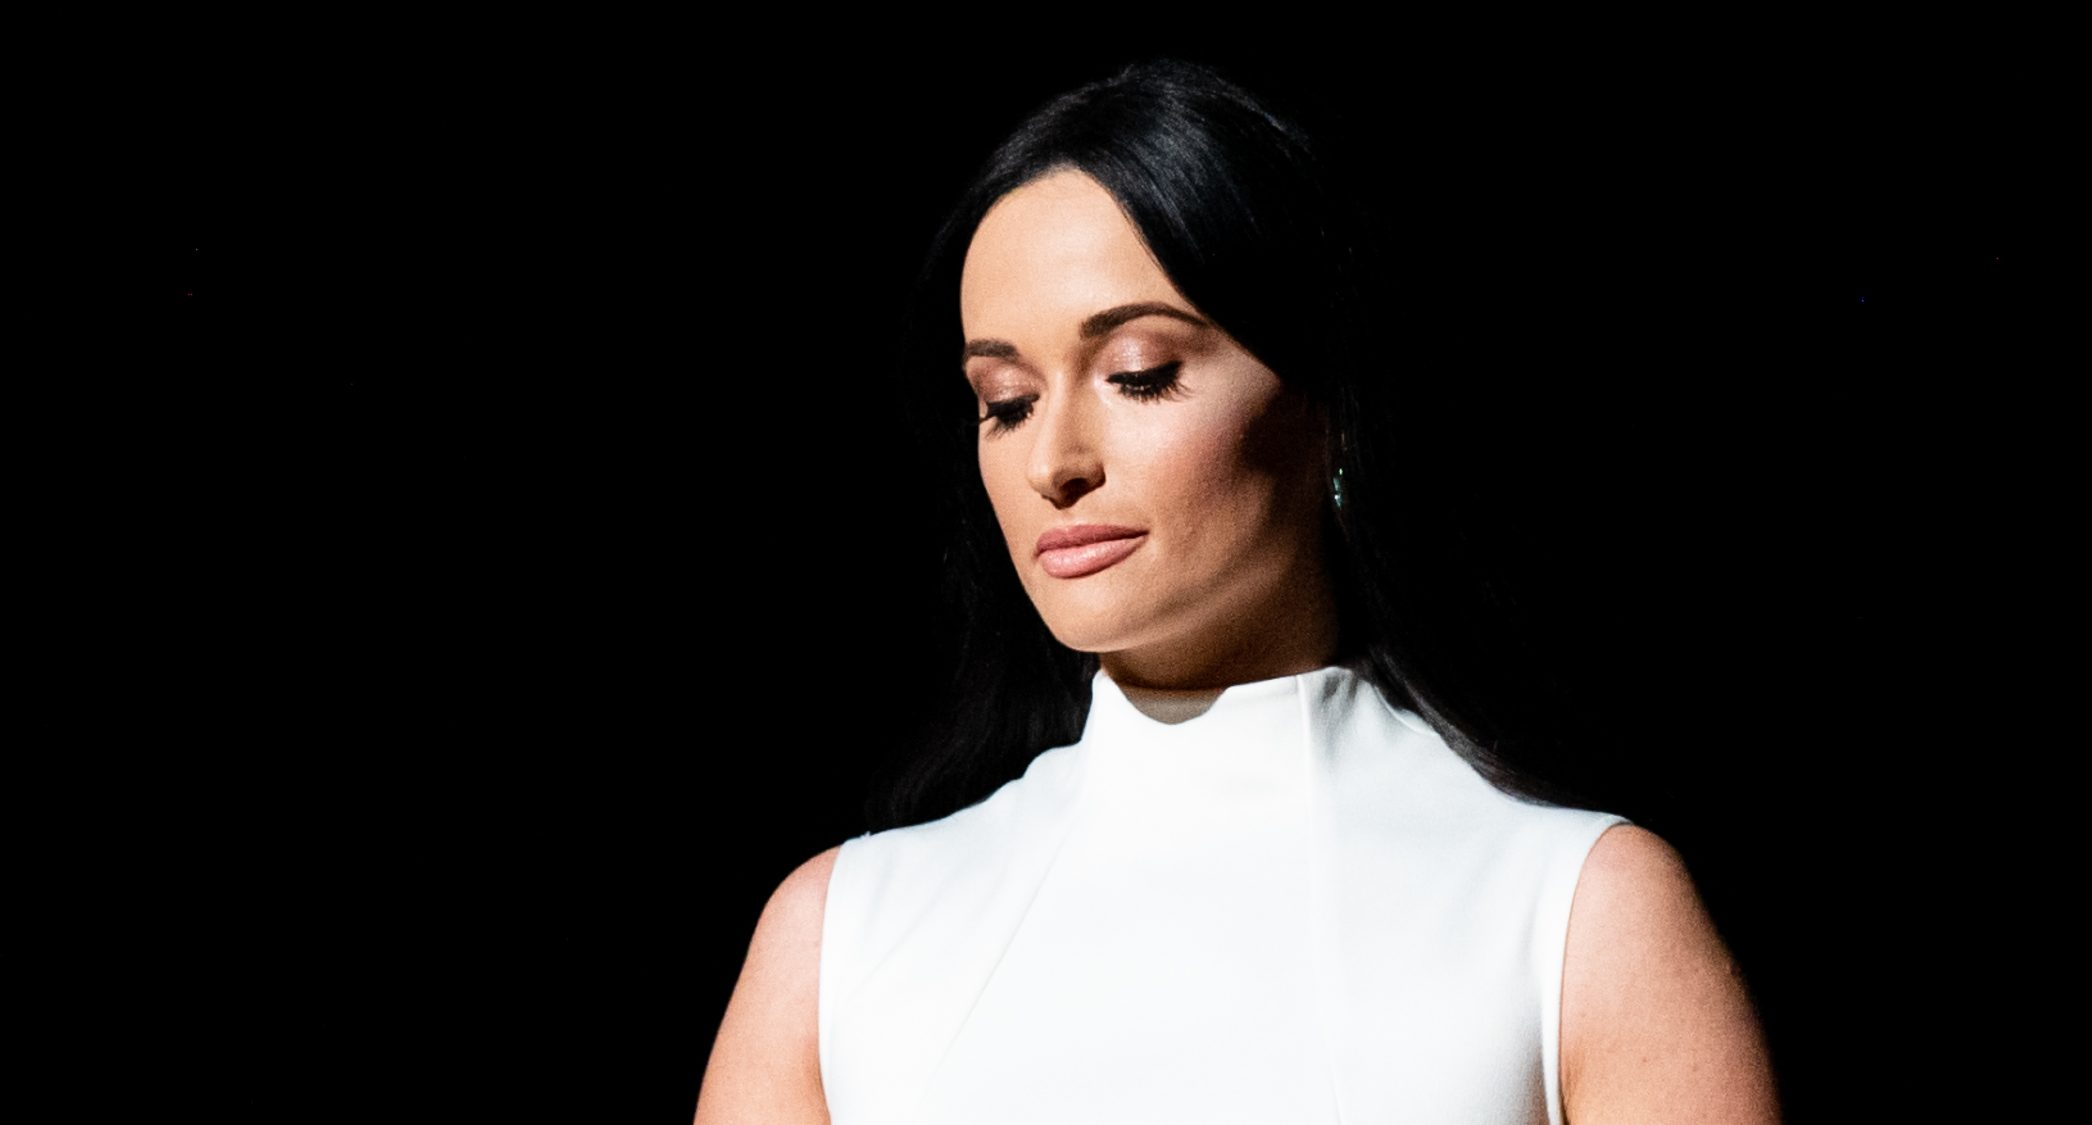 Kacey Musgraves Pays Tribute To Selena With Quot Como La Flor